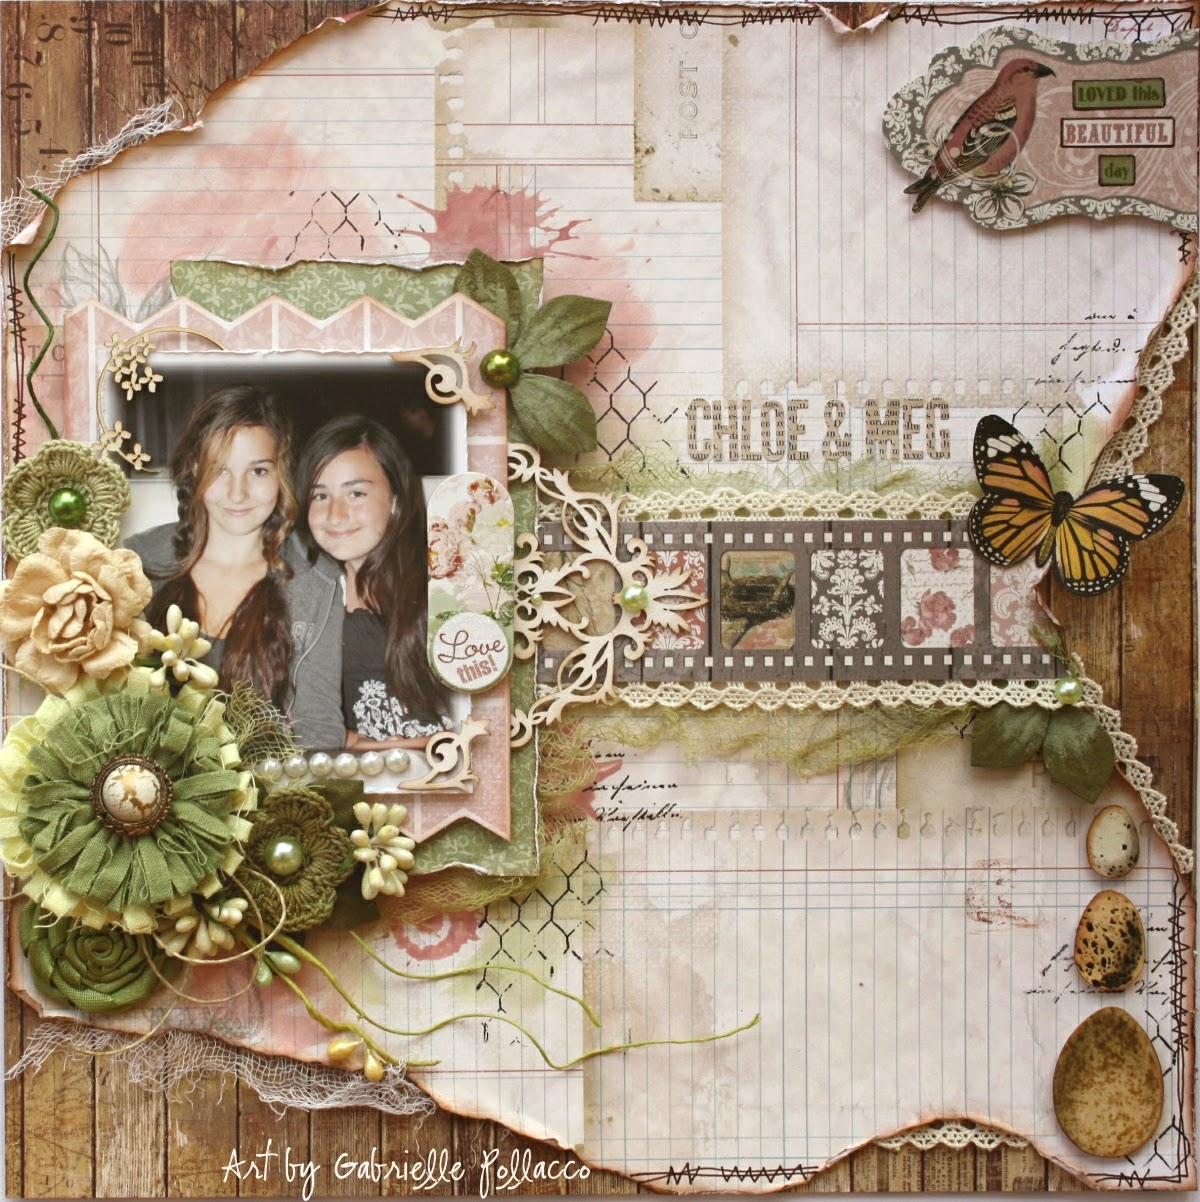 Scrapbook page by Gabrielle Pollacco using Bo Bunny's Garden Journal collection mixed with Heritage, Star-crossed and Sweet Life